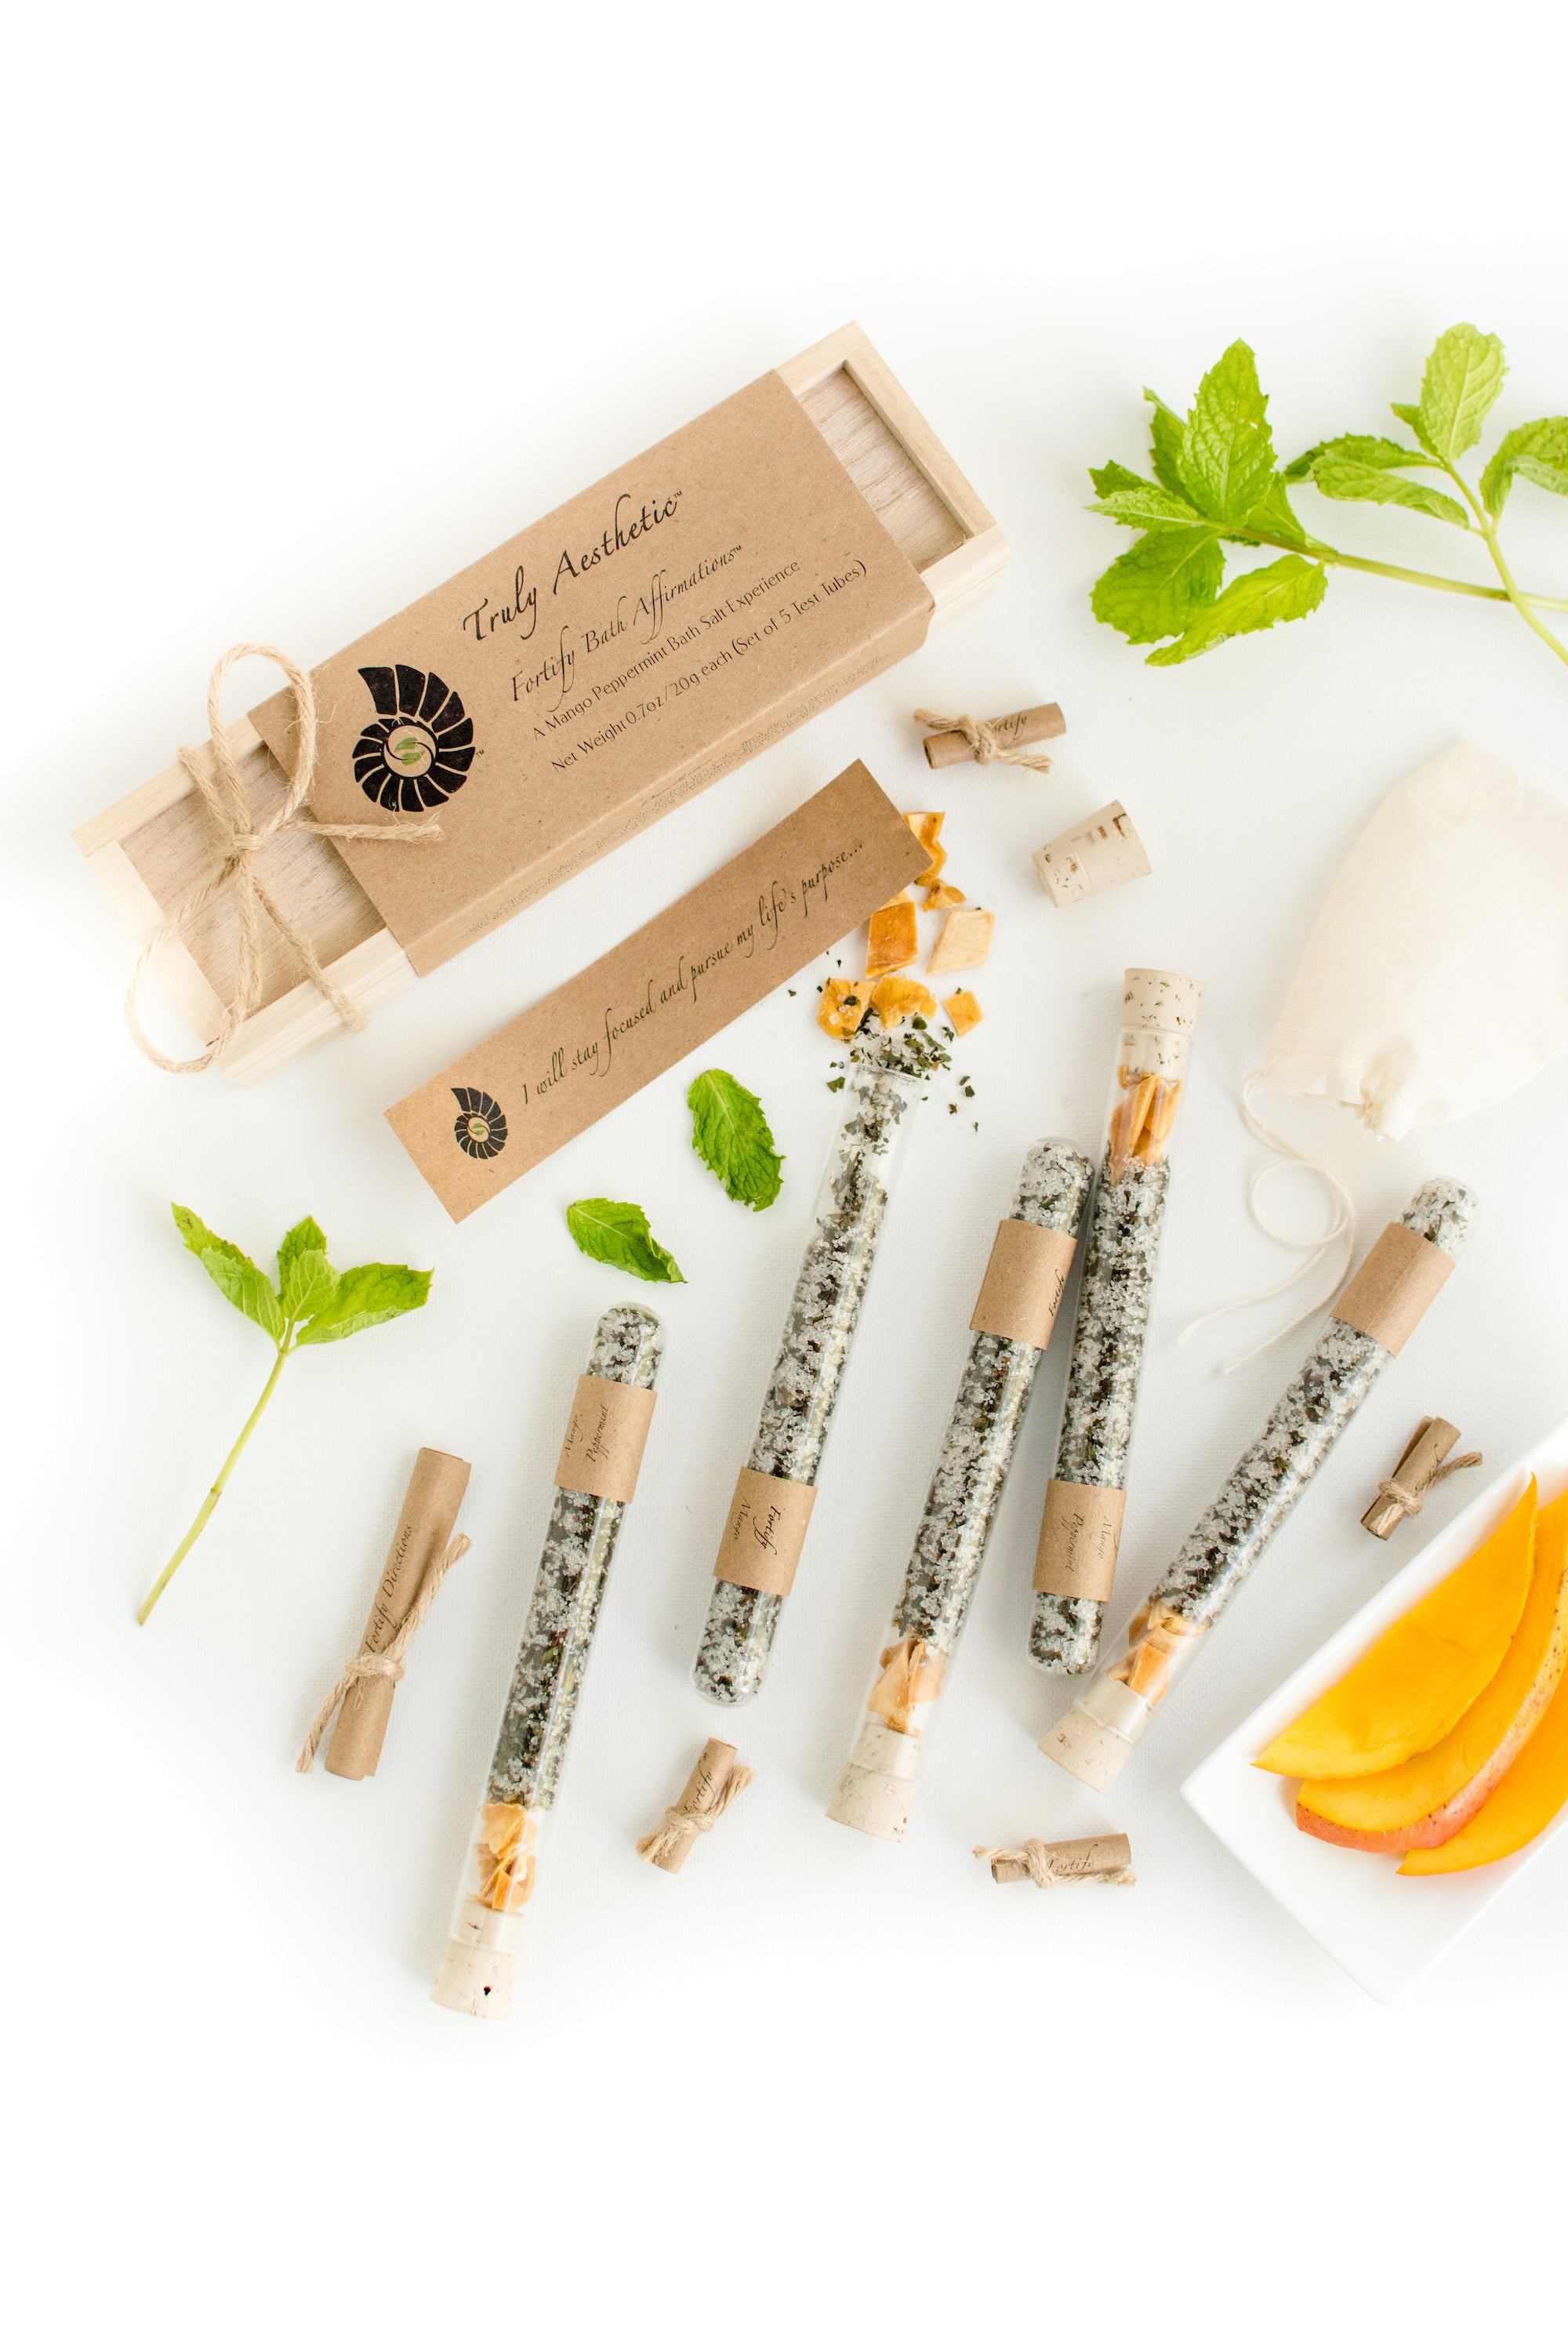 Truly Aesthetic Fortify Mango Peppermint Bath Affirmations Bath Salts in glass tubes